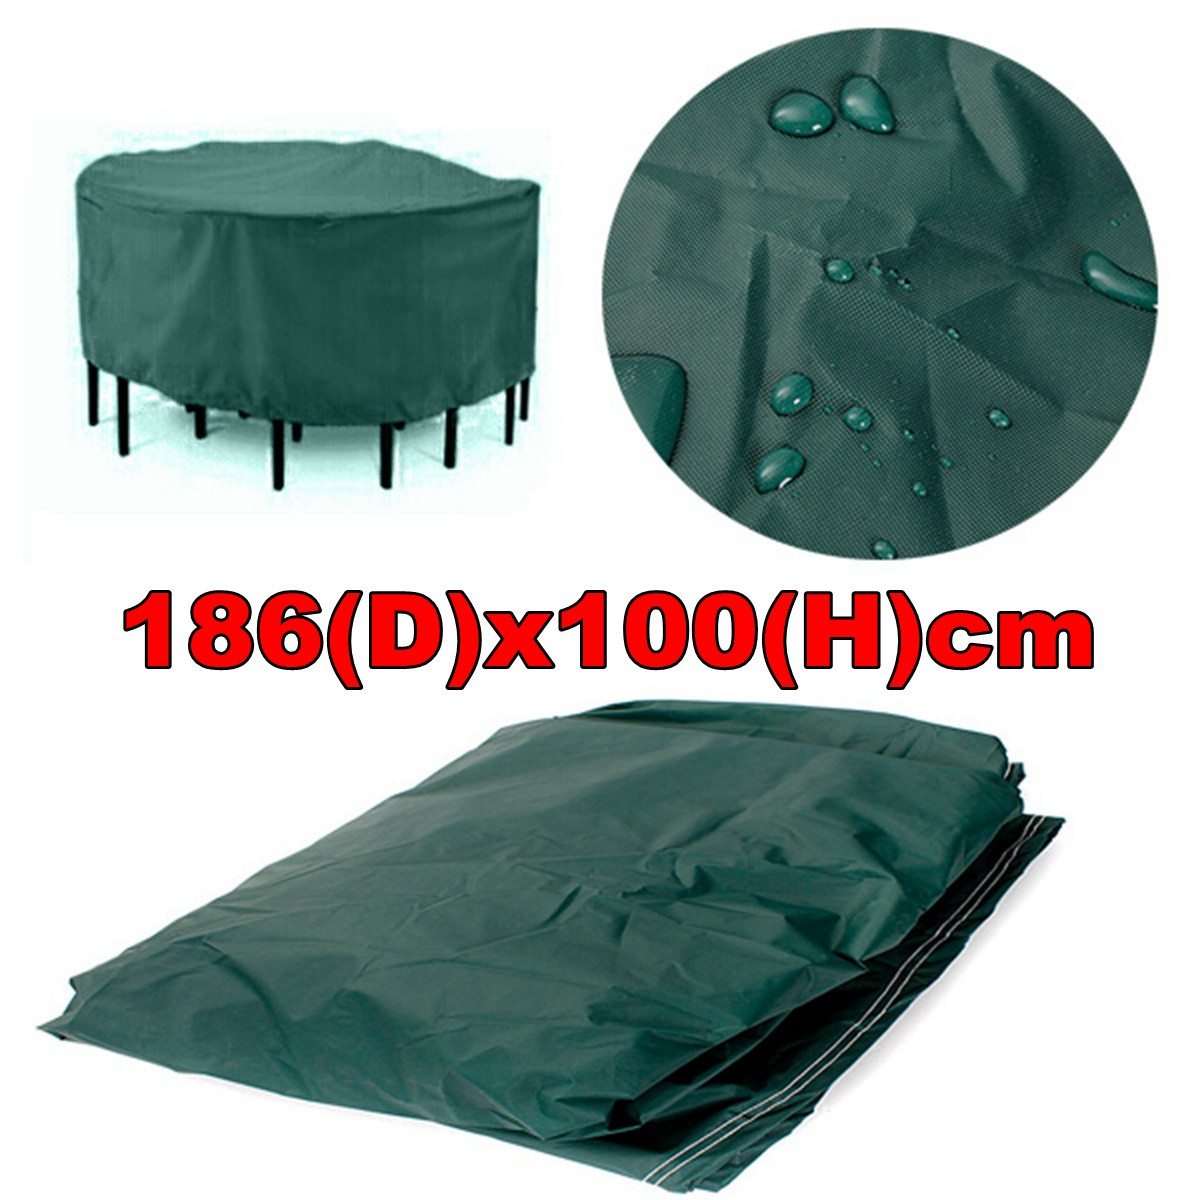 """Furniture Cover Round Outdoor Home Garden Protect Patio Table Chair Green 73"""" x 39"""" Polyethylene Waterproof Sun Rain chaircover Snow UV Resistant"""